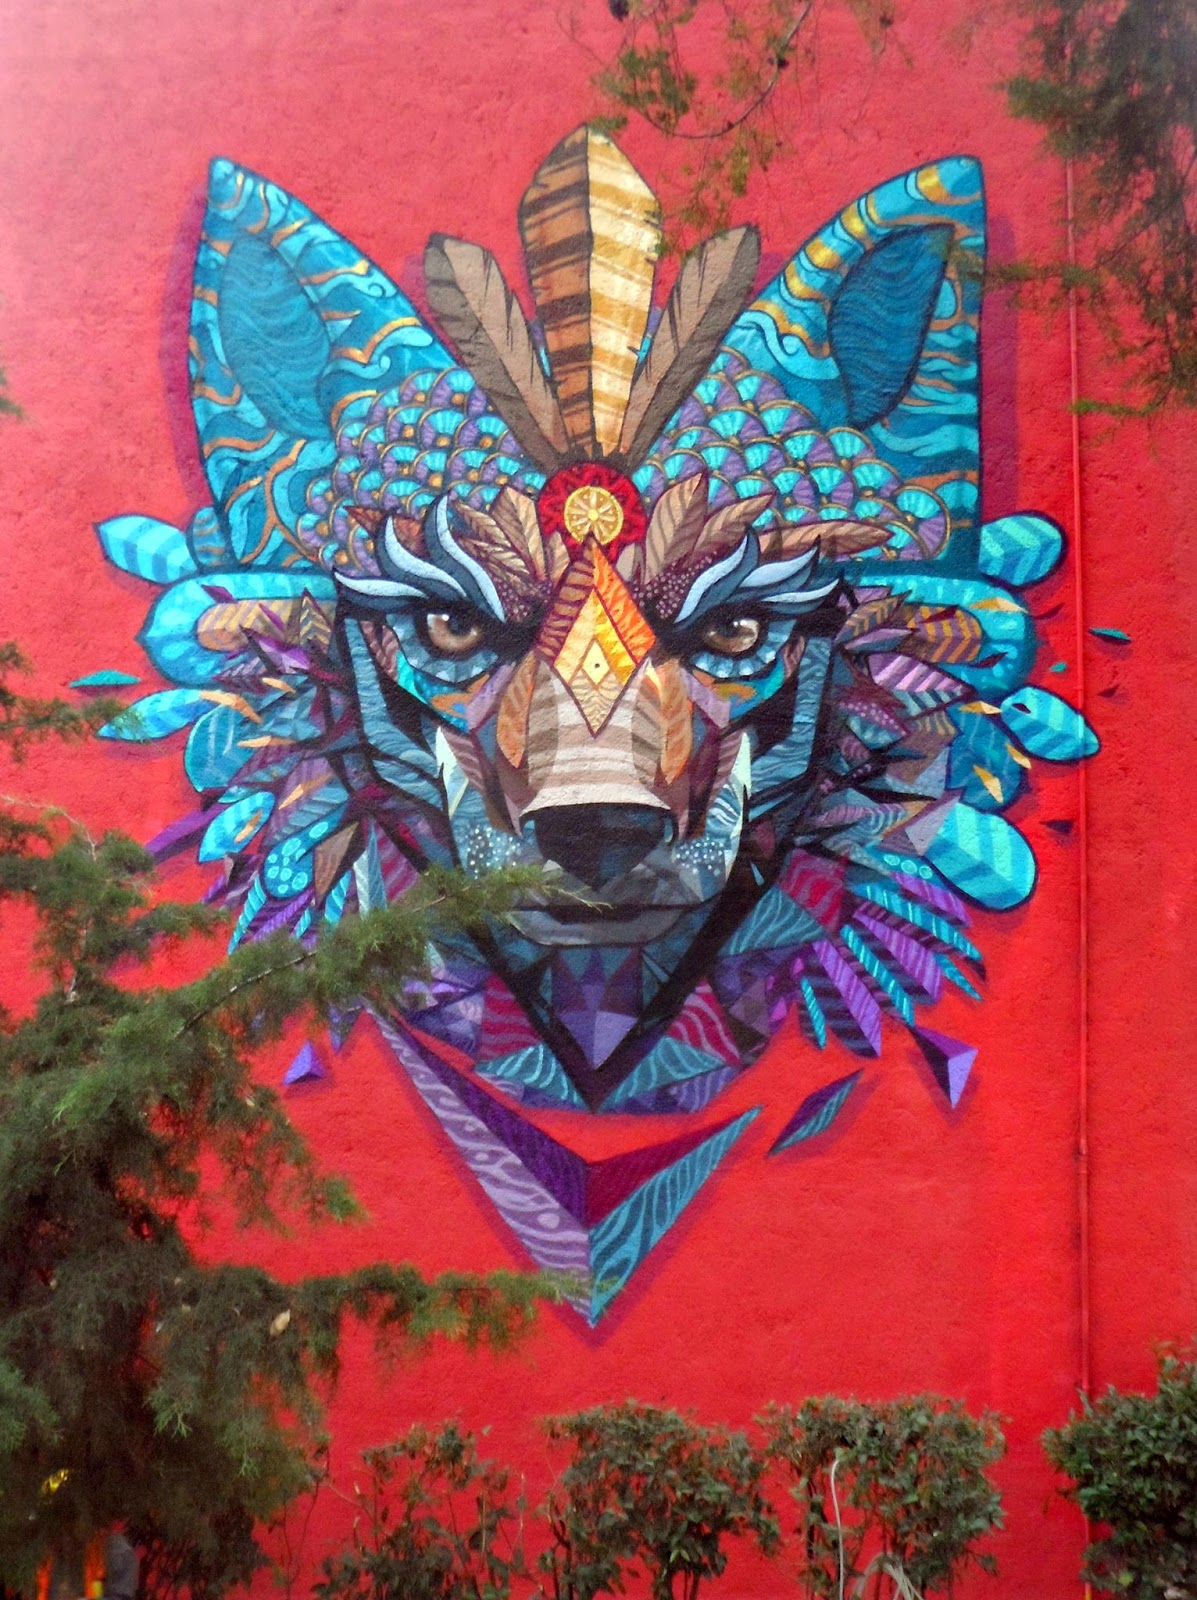 Farid rueda s new murals in mexico the vandallist - Rueda de colores ...